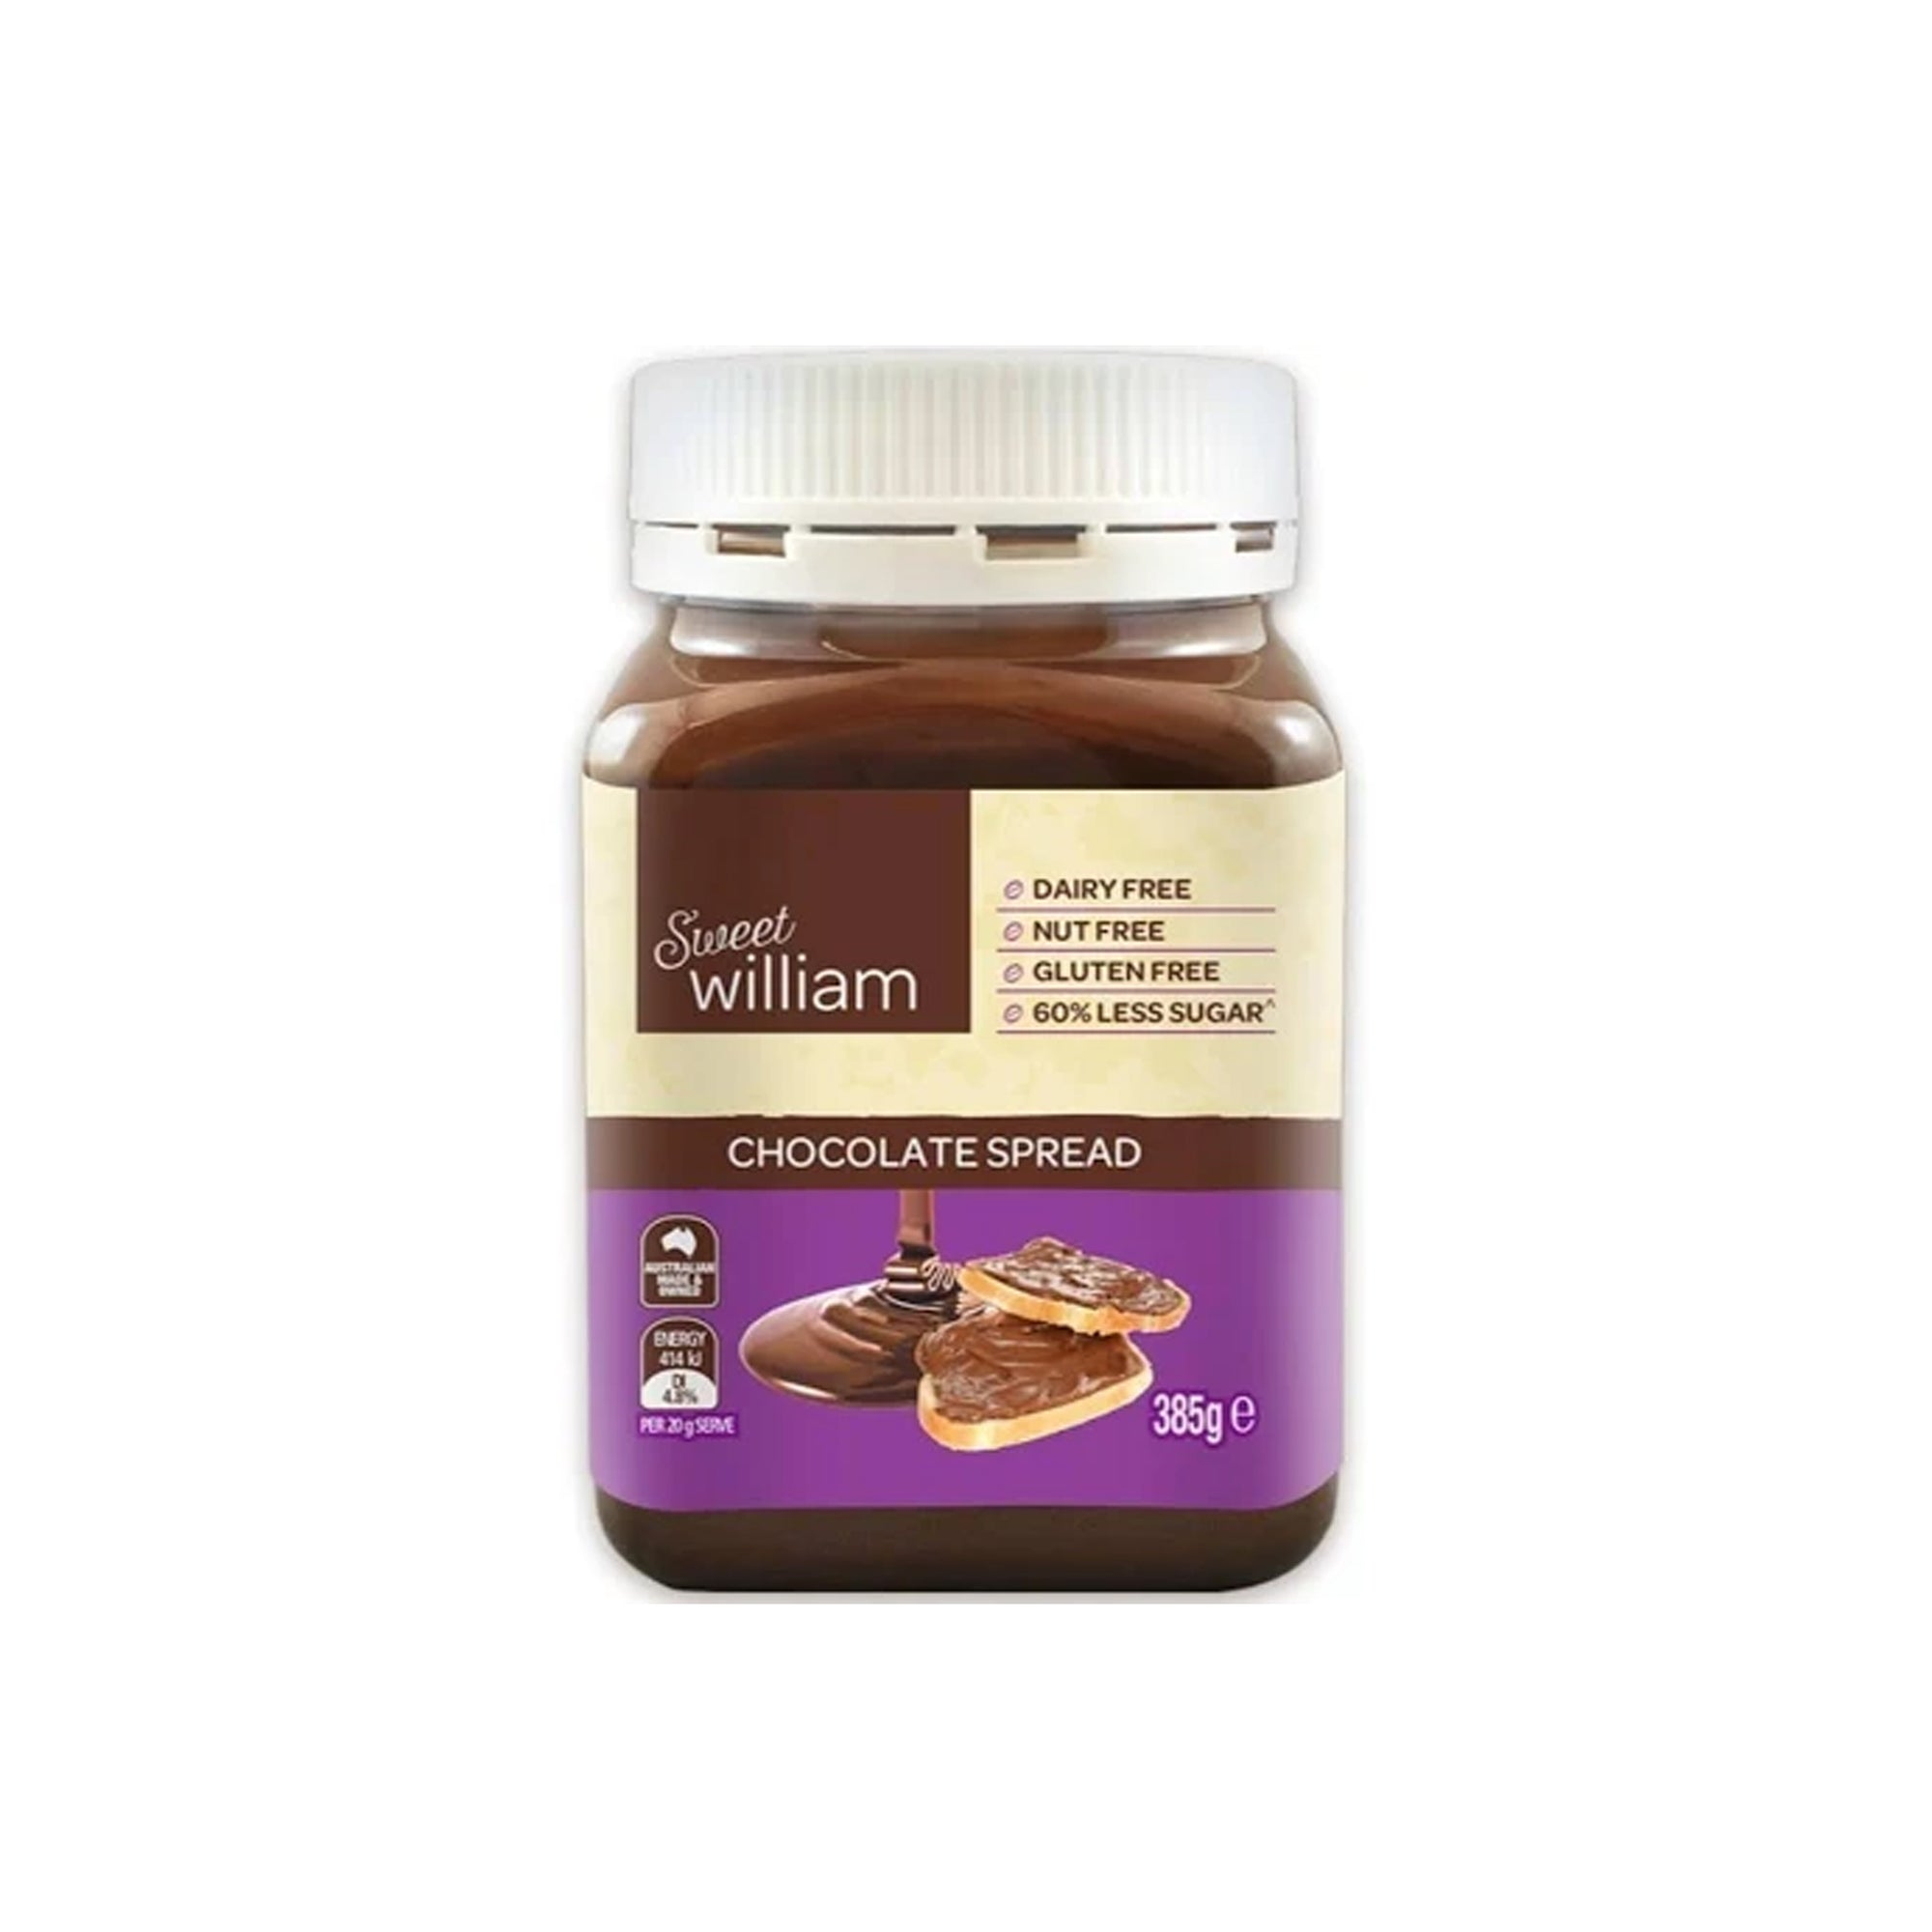 Sweet William - Chocolate Spread 385g